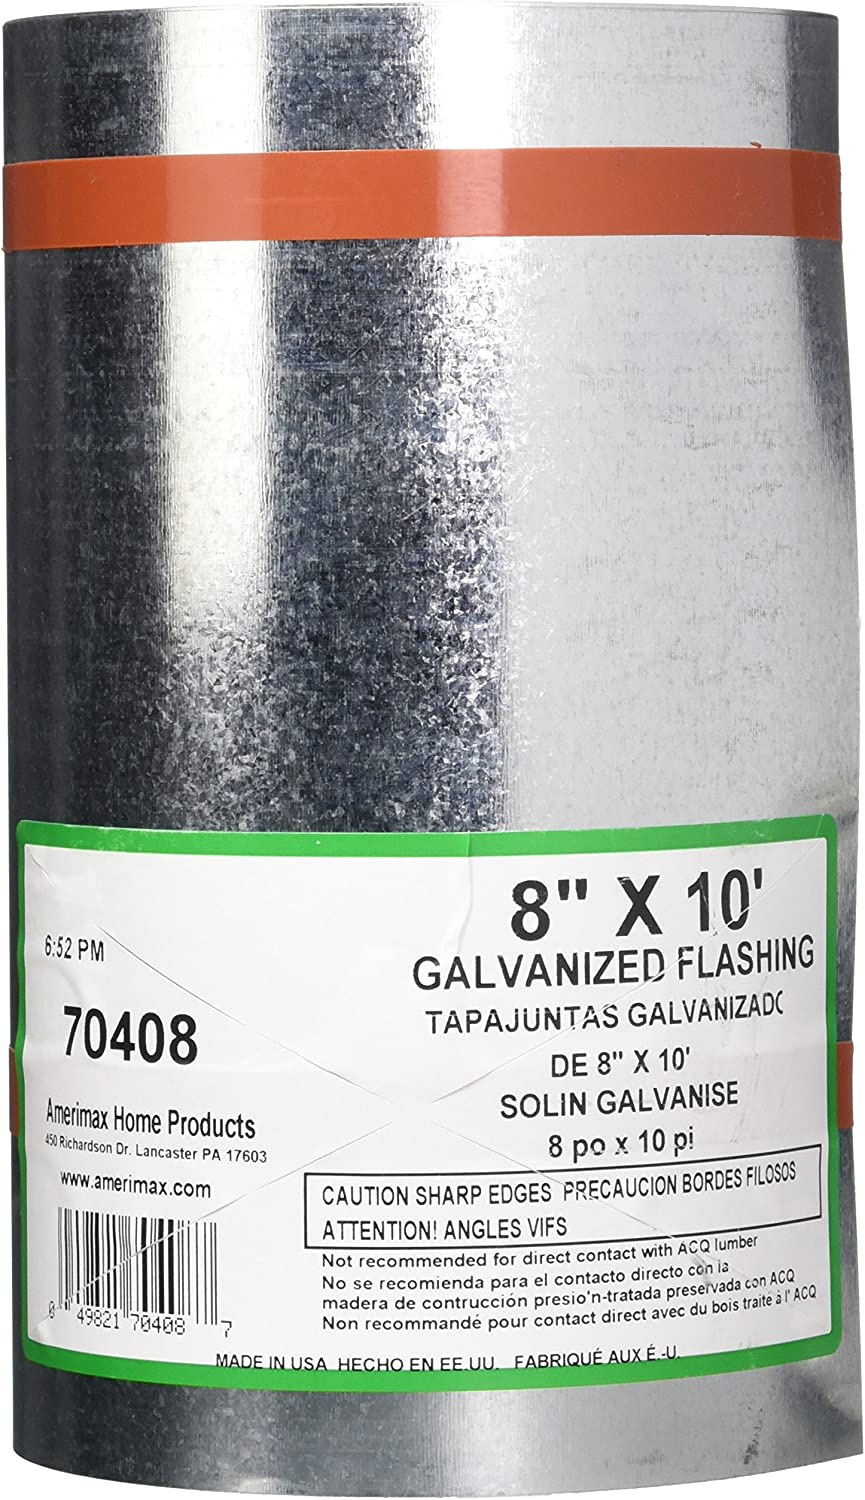 AMERIMAX HOME PRODUCTS 70408 8-Inch x10-Feet Galvanized Flashing